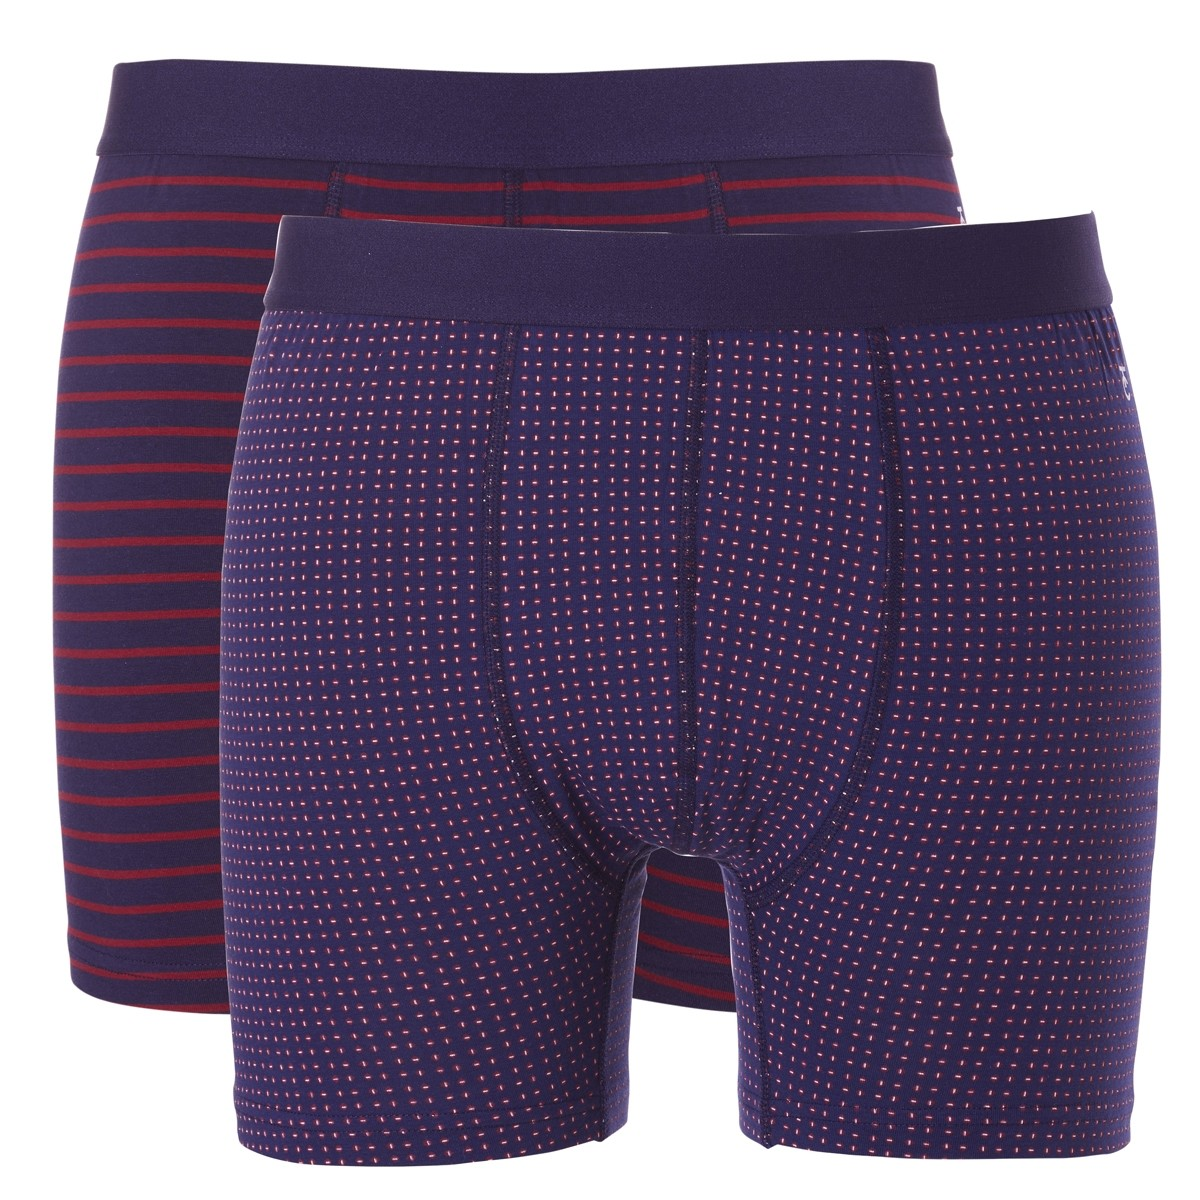 Ten Cate Basic boxershorts Stripes + Square